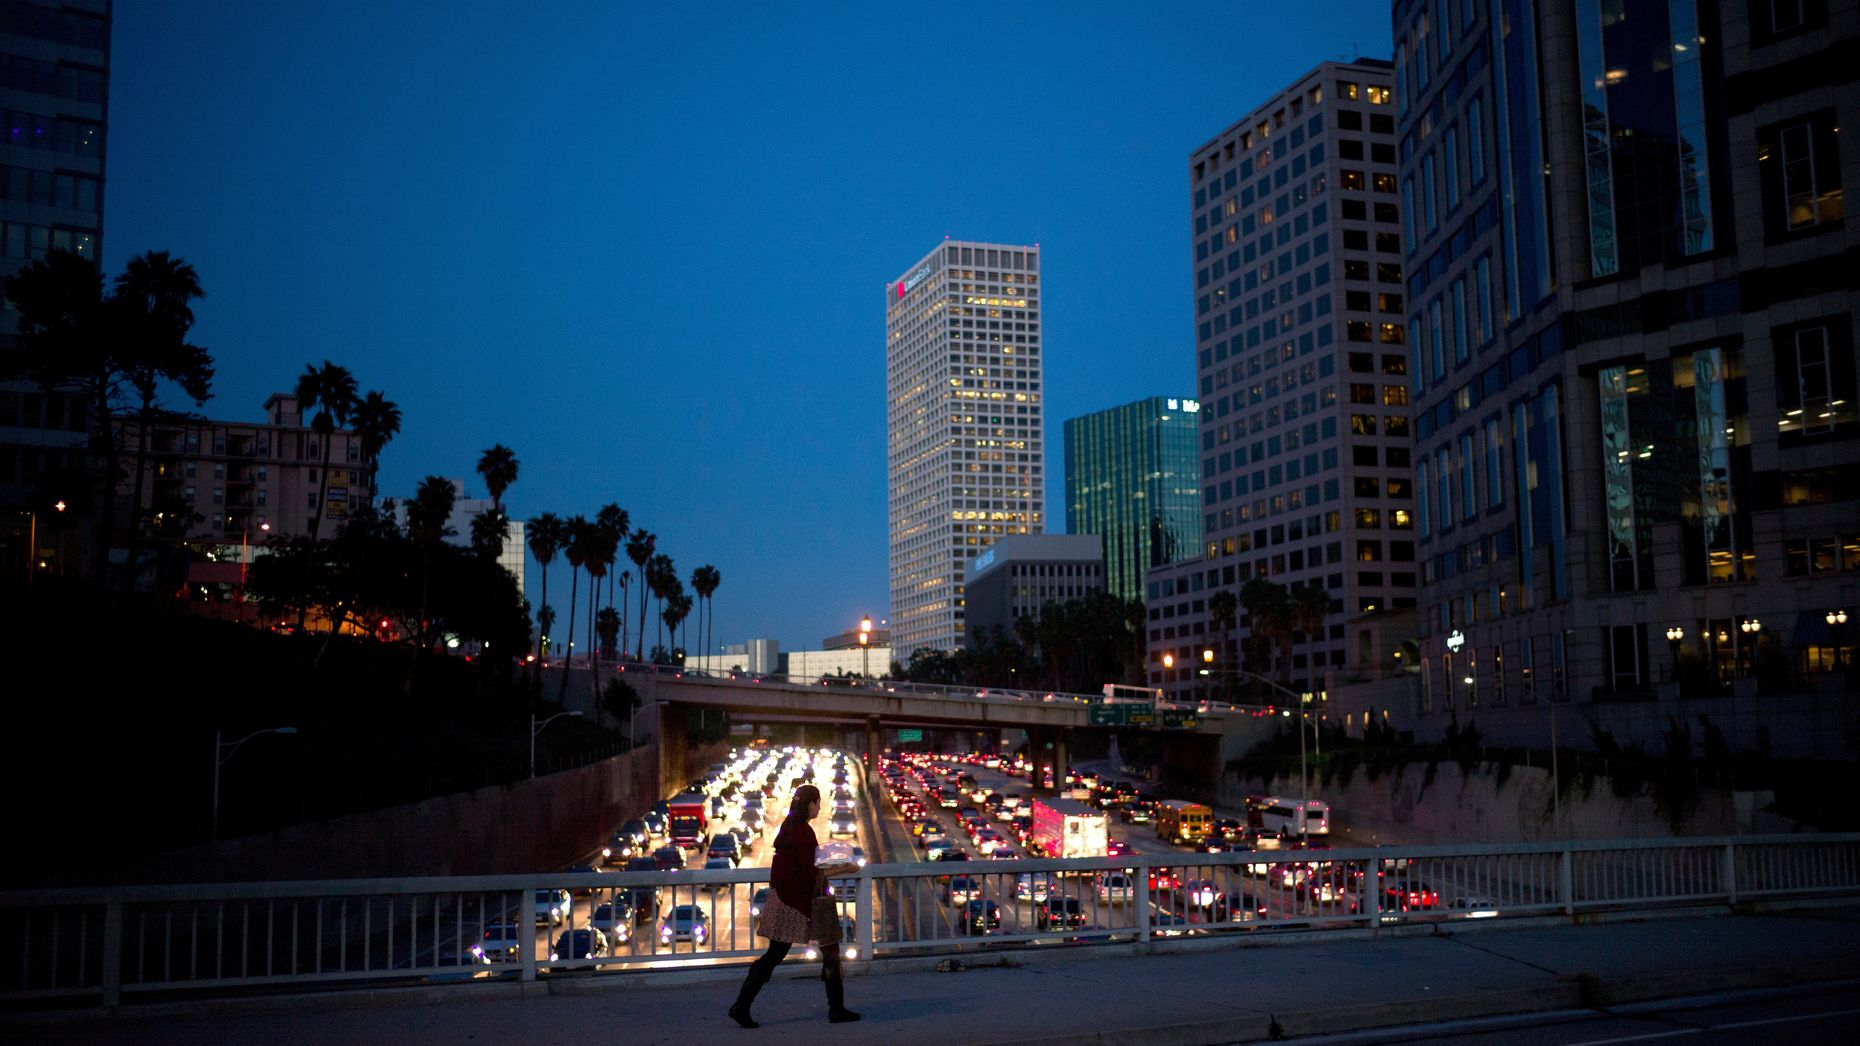 Rush hour traffic on the 110 freeway in Los Angeles. Photo by AP.